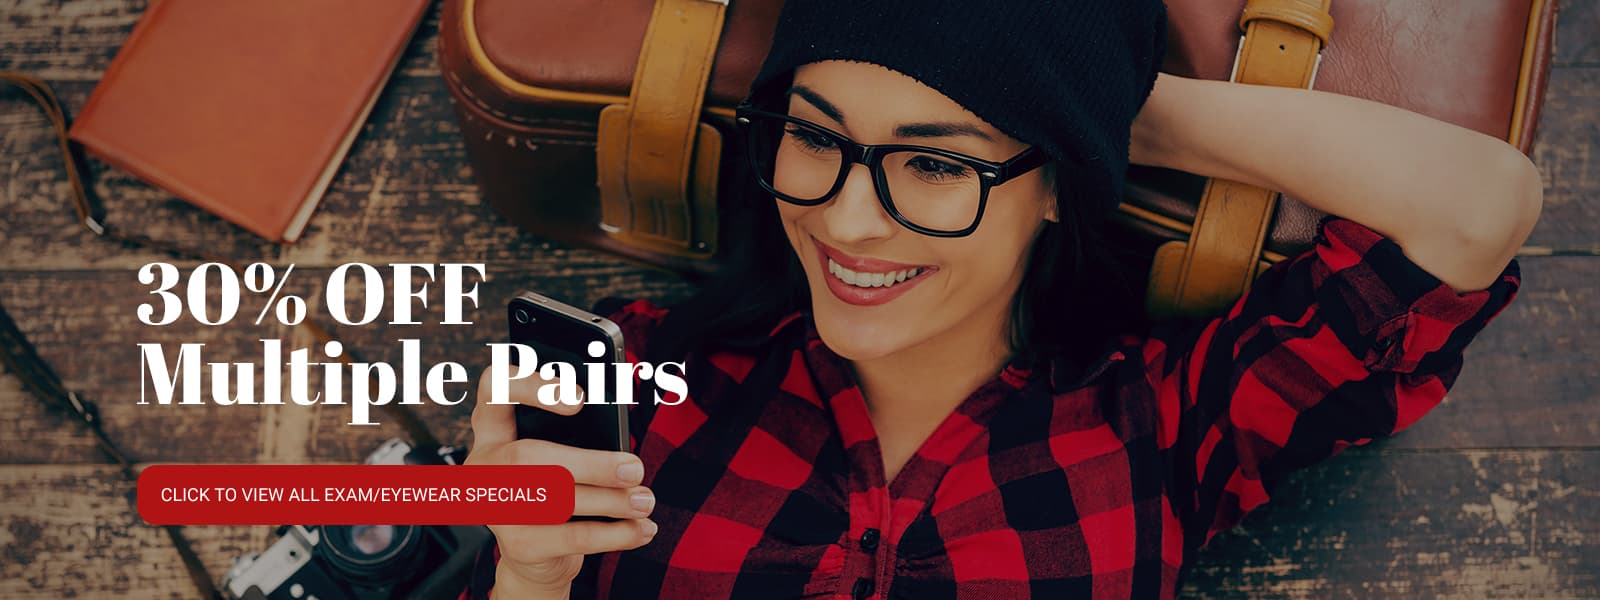 Eyelux promotional ad. 30% off multiple pairs of glasses. 96 dollar rebates on annual supply of contact lenses. Exam and designer glasses starting at 226 dollars.